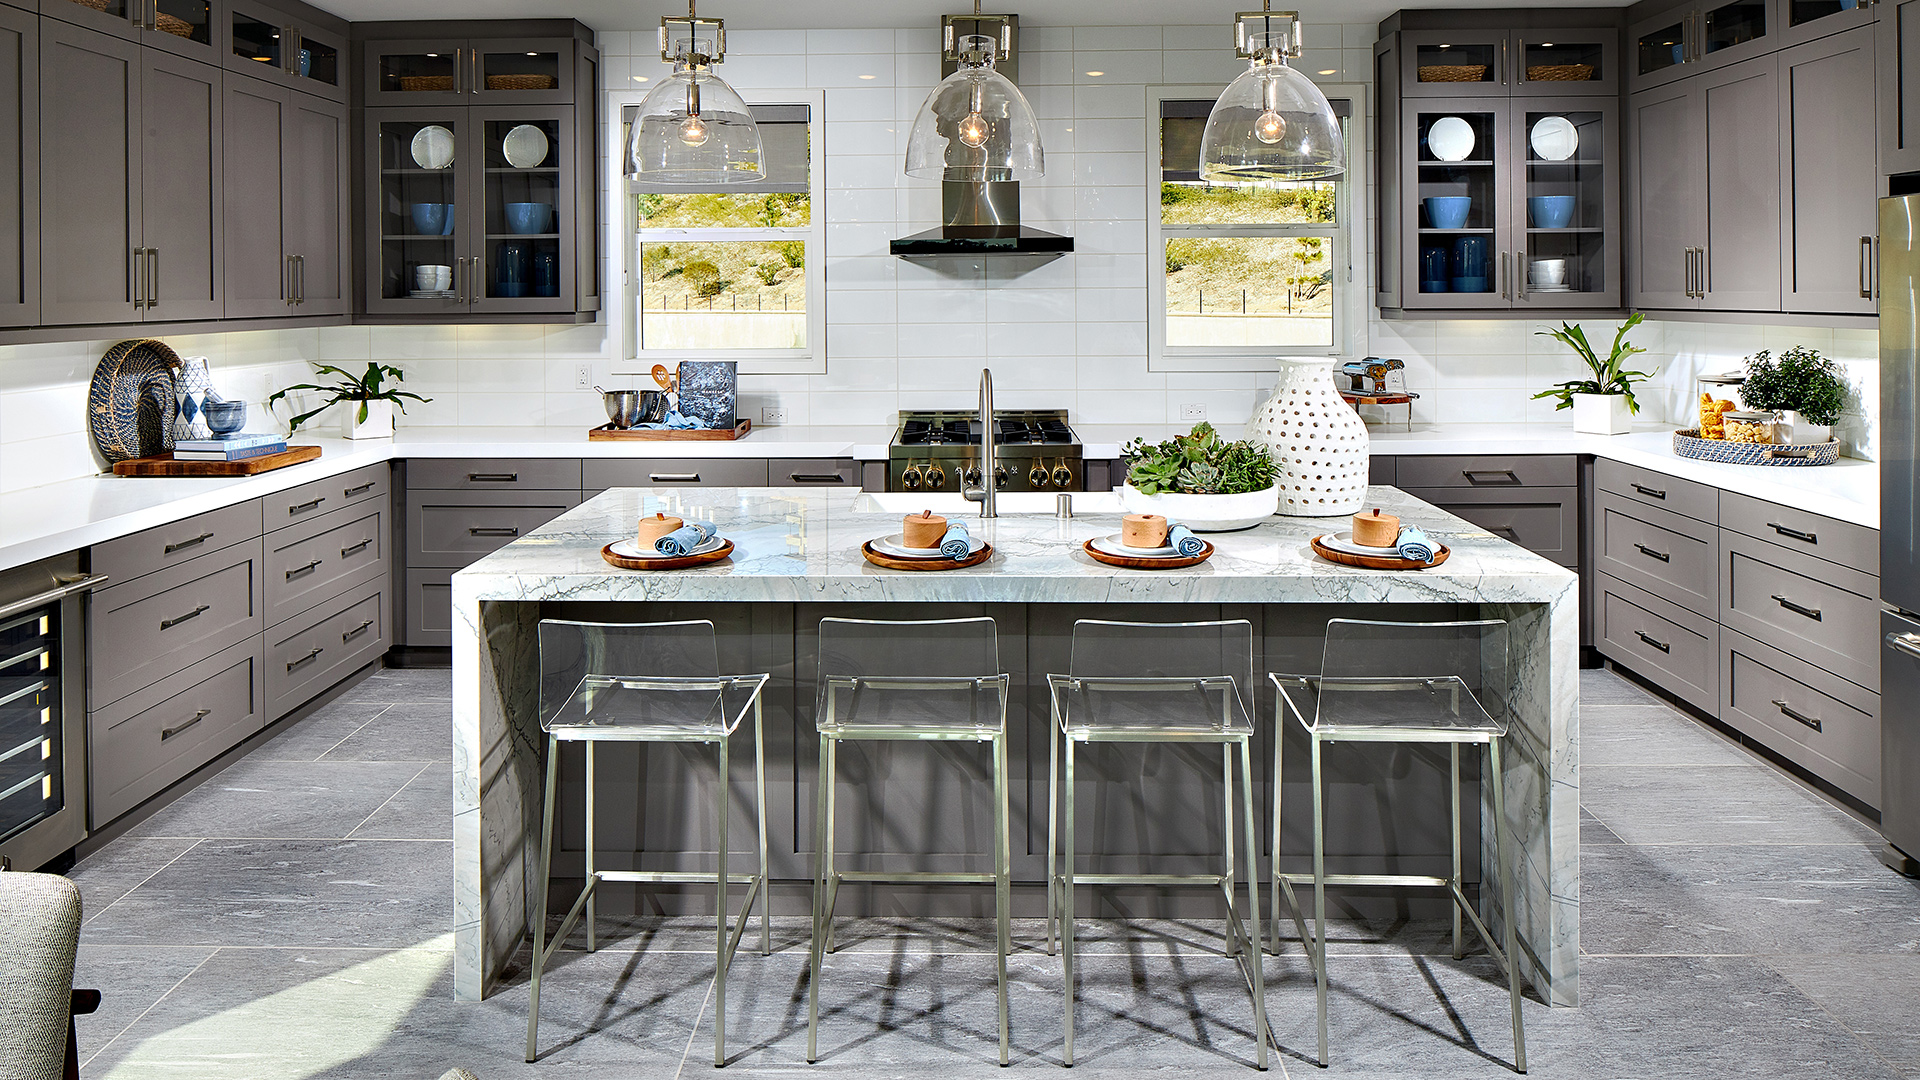 New Luxury Homes For Sale in San go, CA | Avella at Civita on elizabeth homes plans, ryan homes plans, jordan homes plans, victoria homes plans,